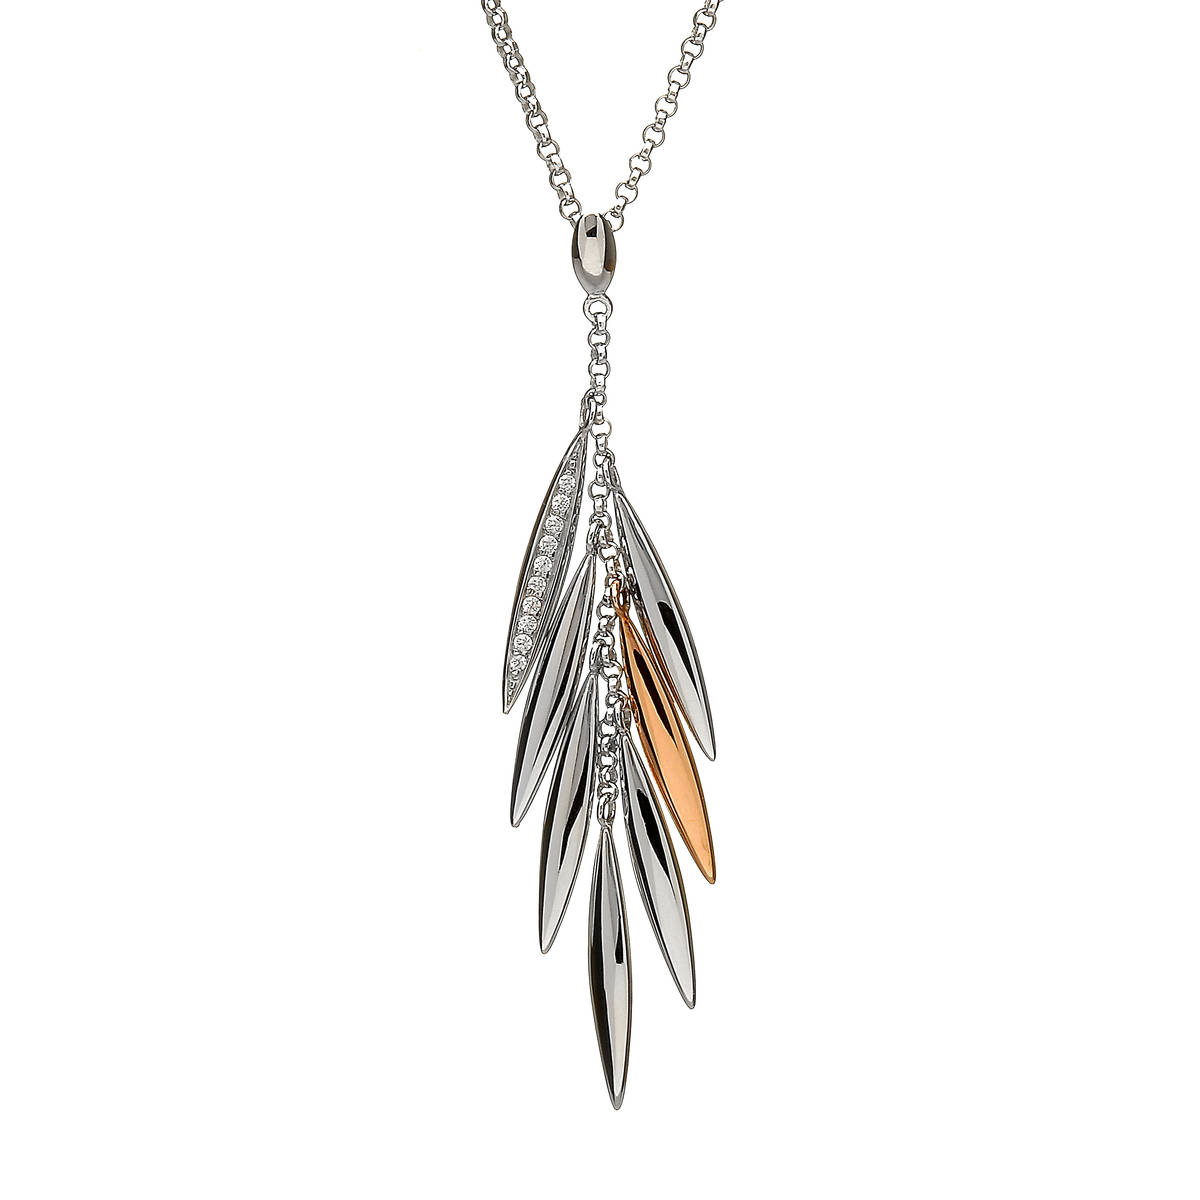 House of Lor silver/rose gold feather pendant 1 feather made from rare Irish gold